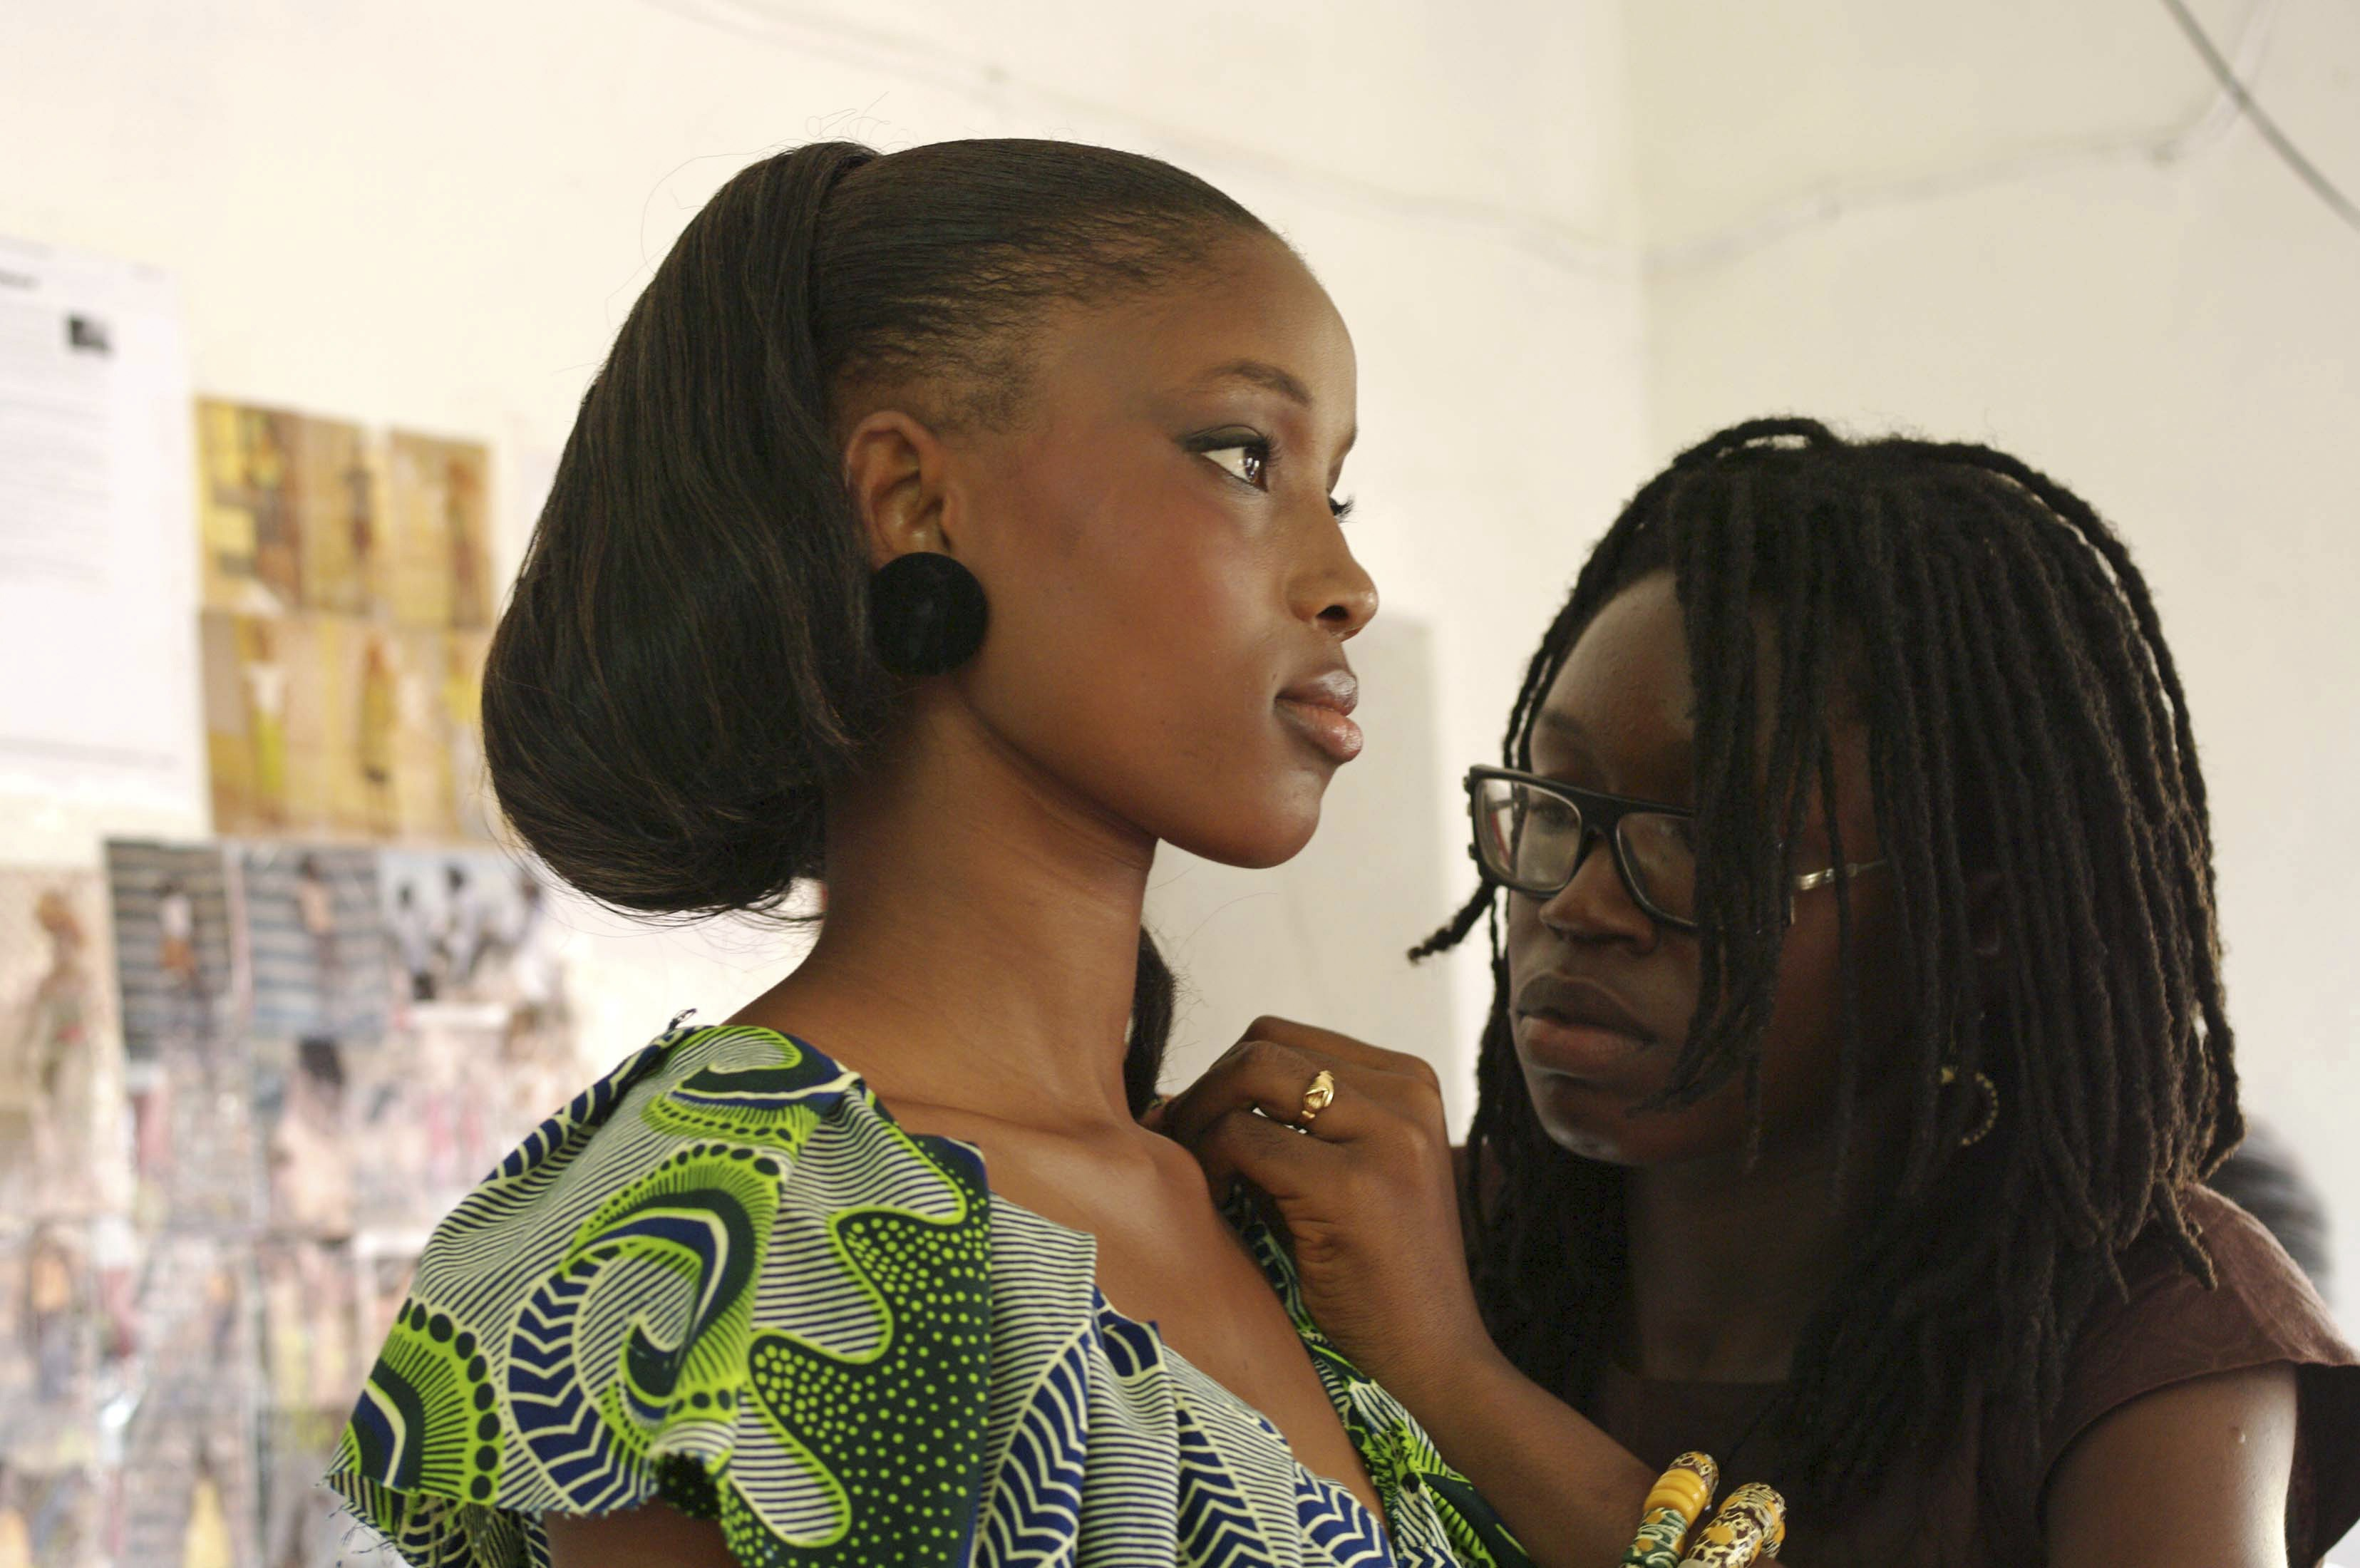 Sierra Leonean fashion designer Adama Kai, right, adjusts a dress on Ramatu Wurie during her first photo shoot in downtown Freetown, Sierra Leone on A...